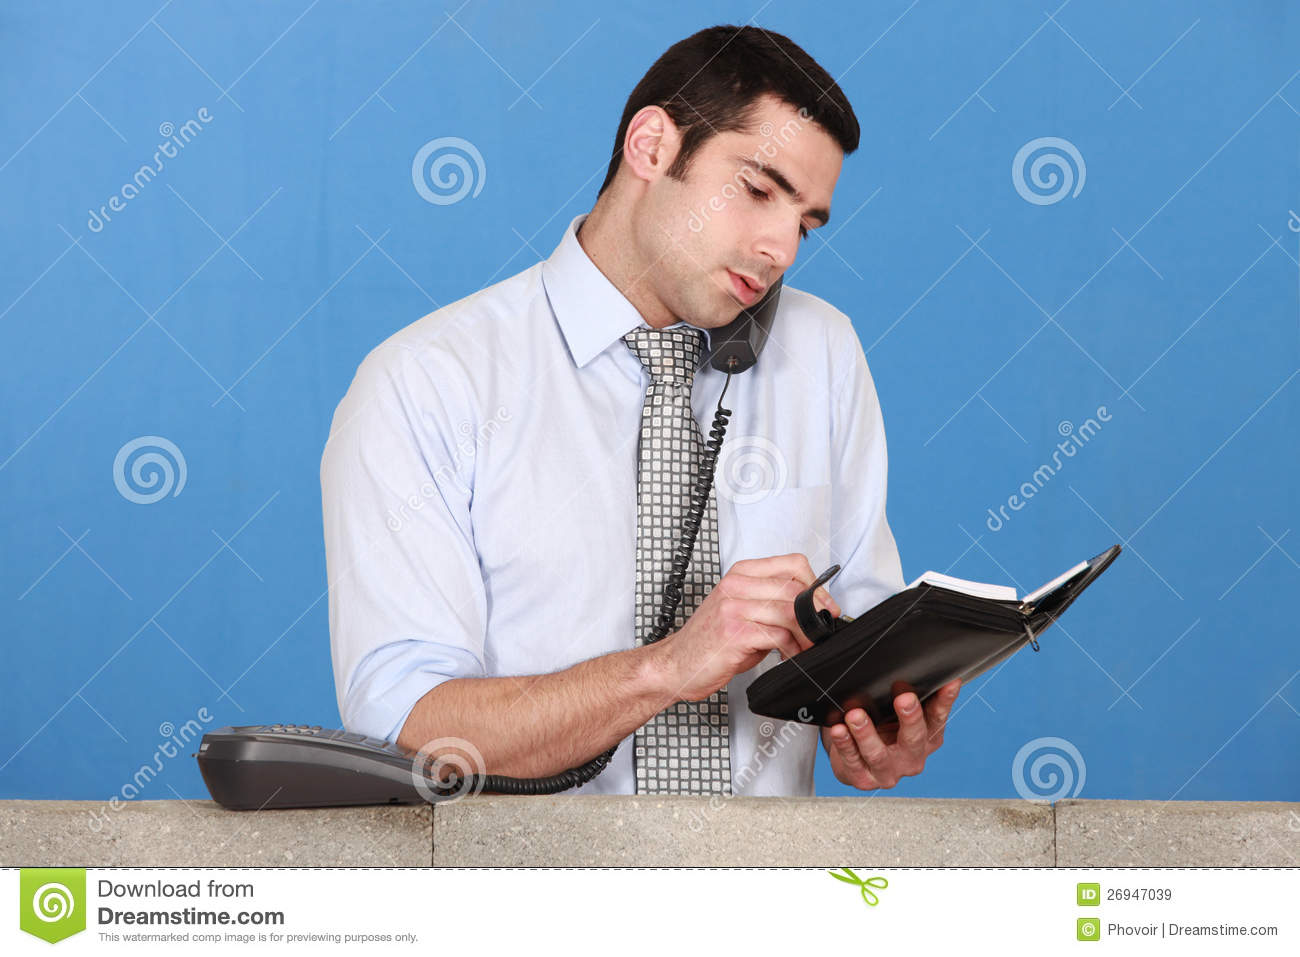 Man scheduling an appointment